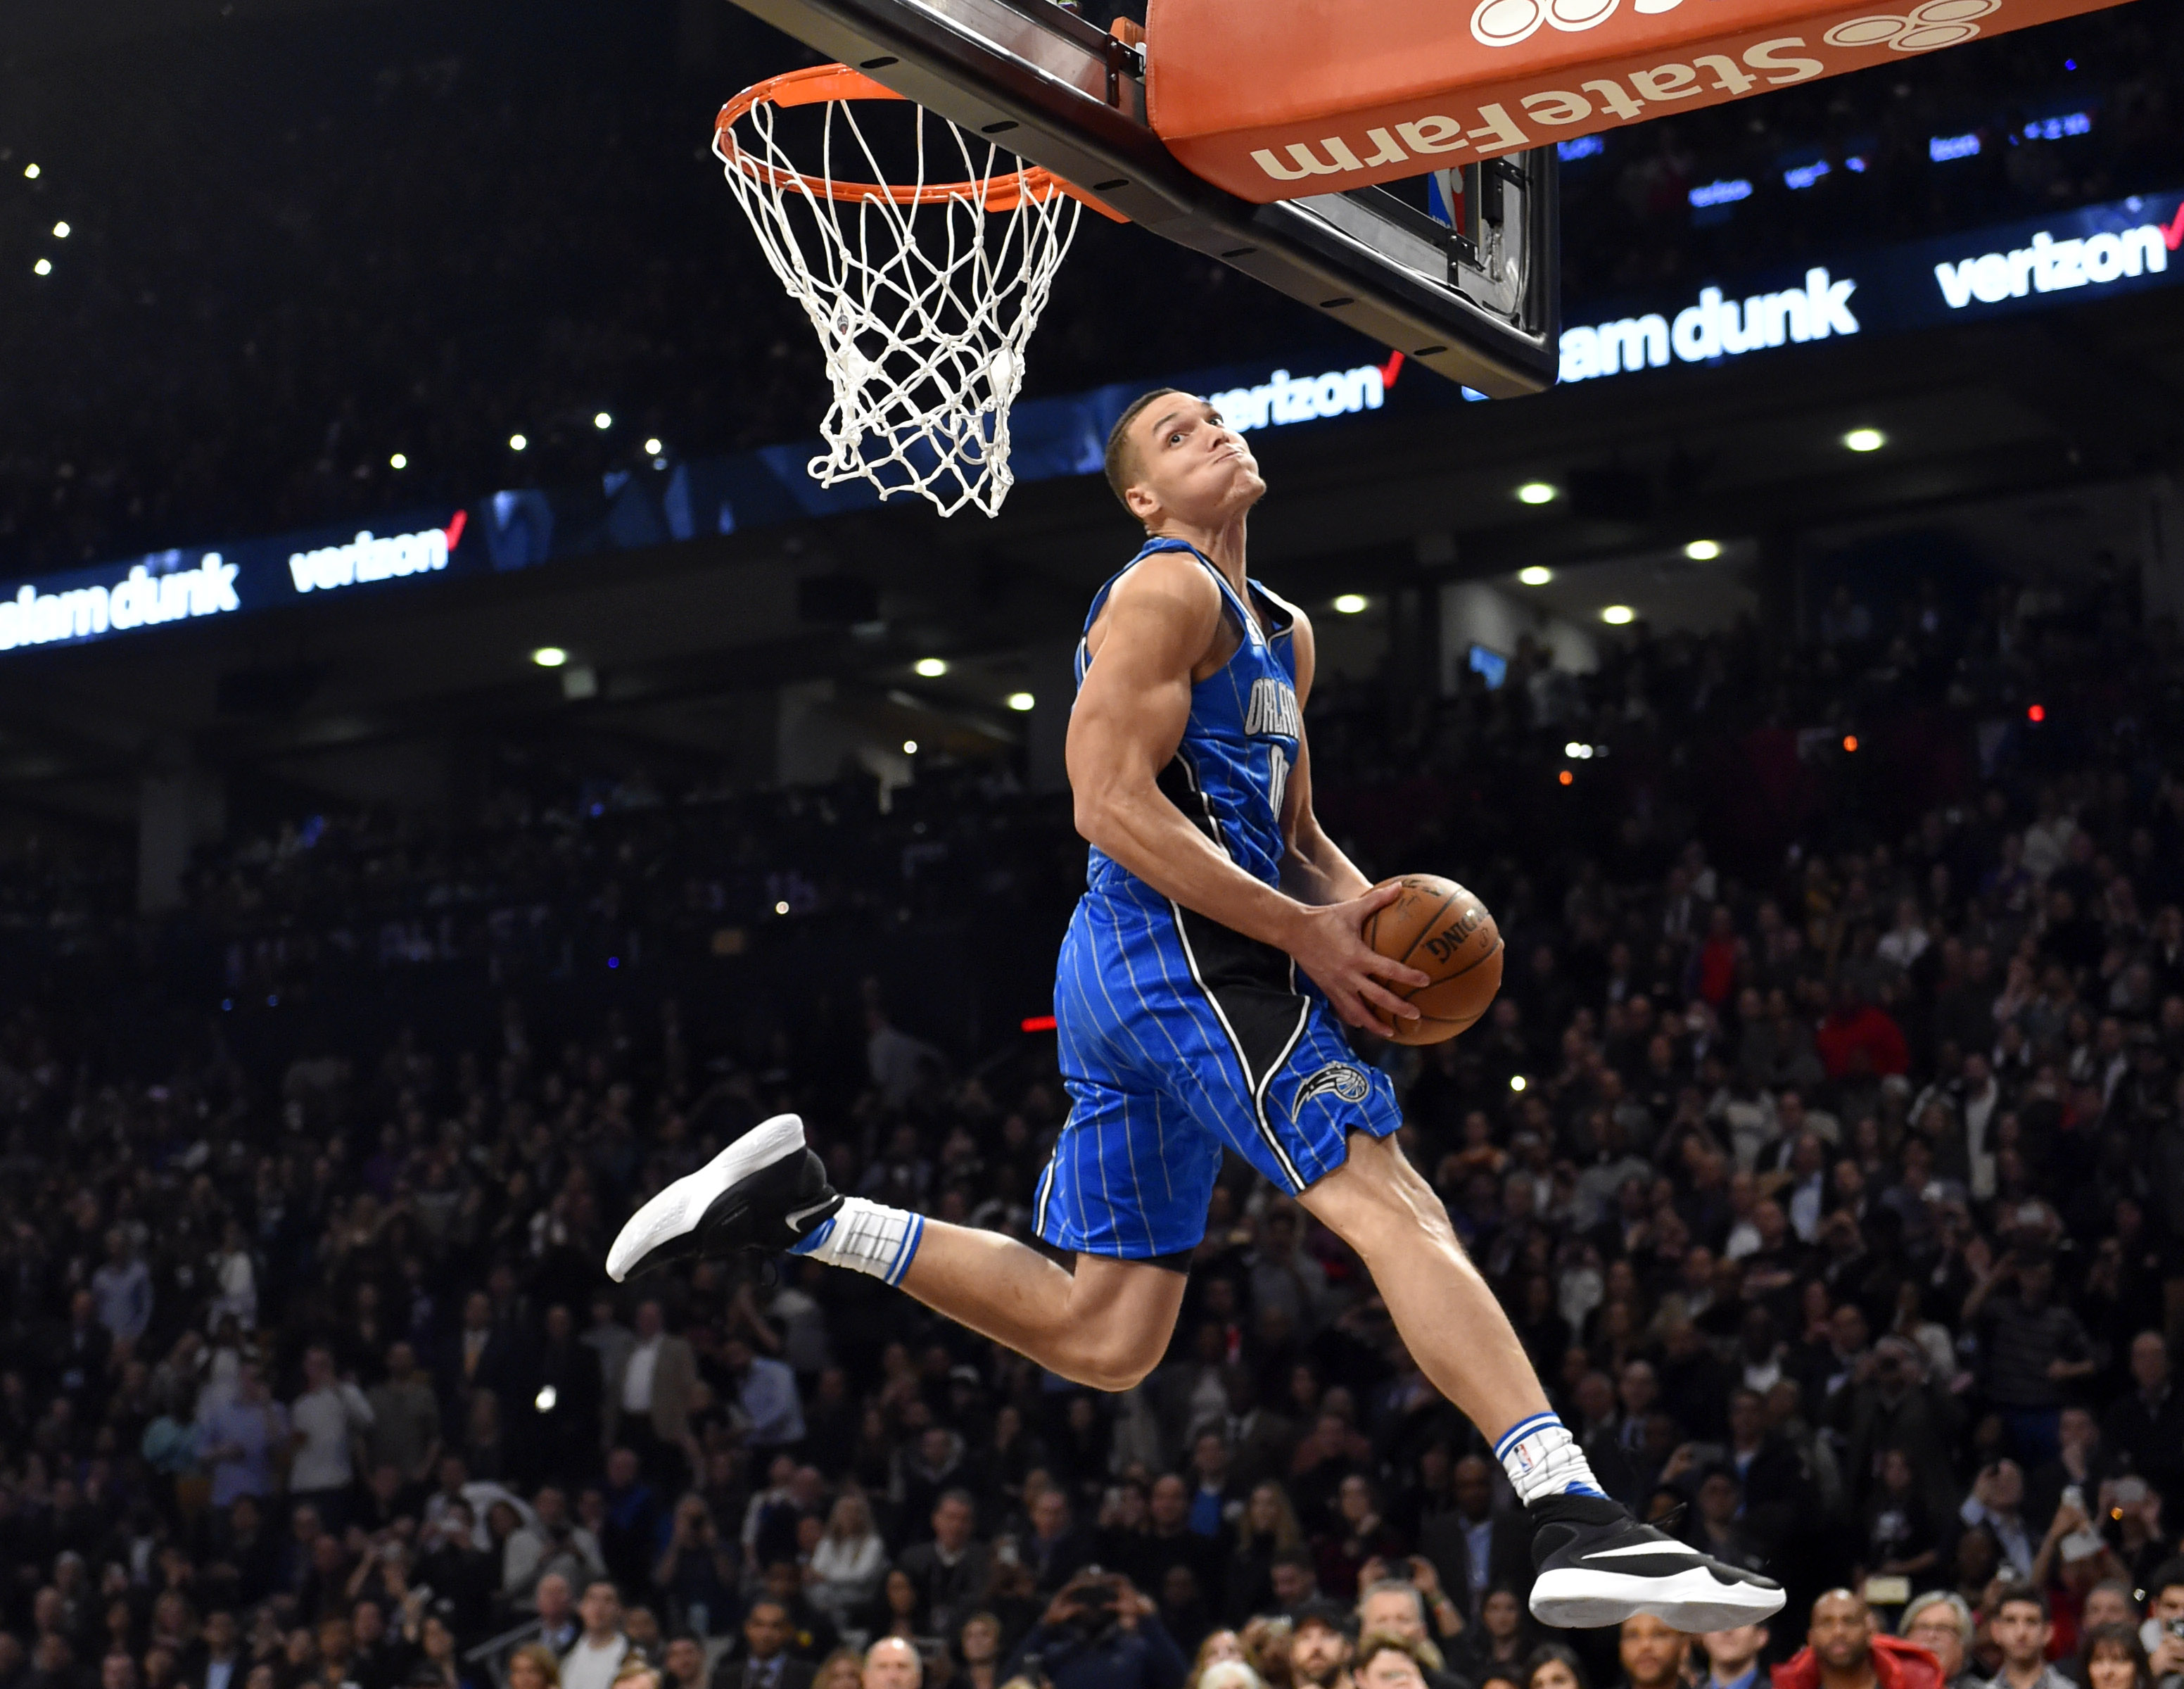 Tracy Mcgrady Iphone Wallpaper The 2016 Nba Dunk Contest In 7 Astonishing Photos